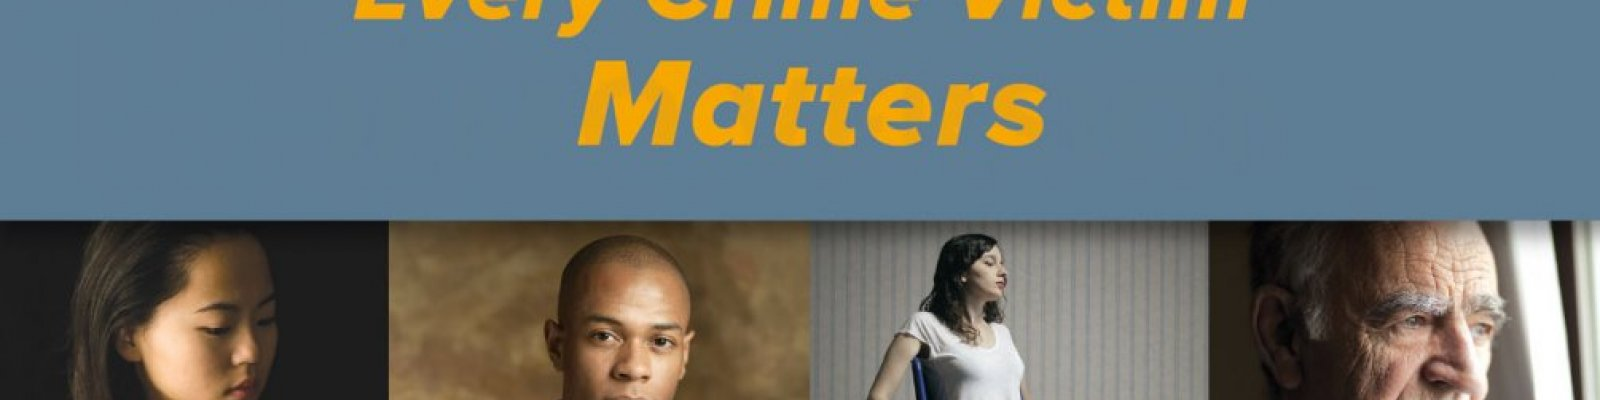 Every Crime Victim Matters